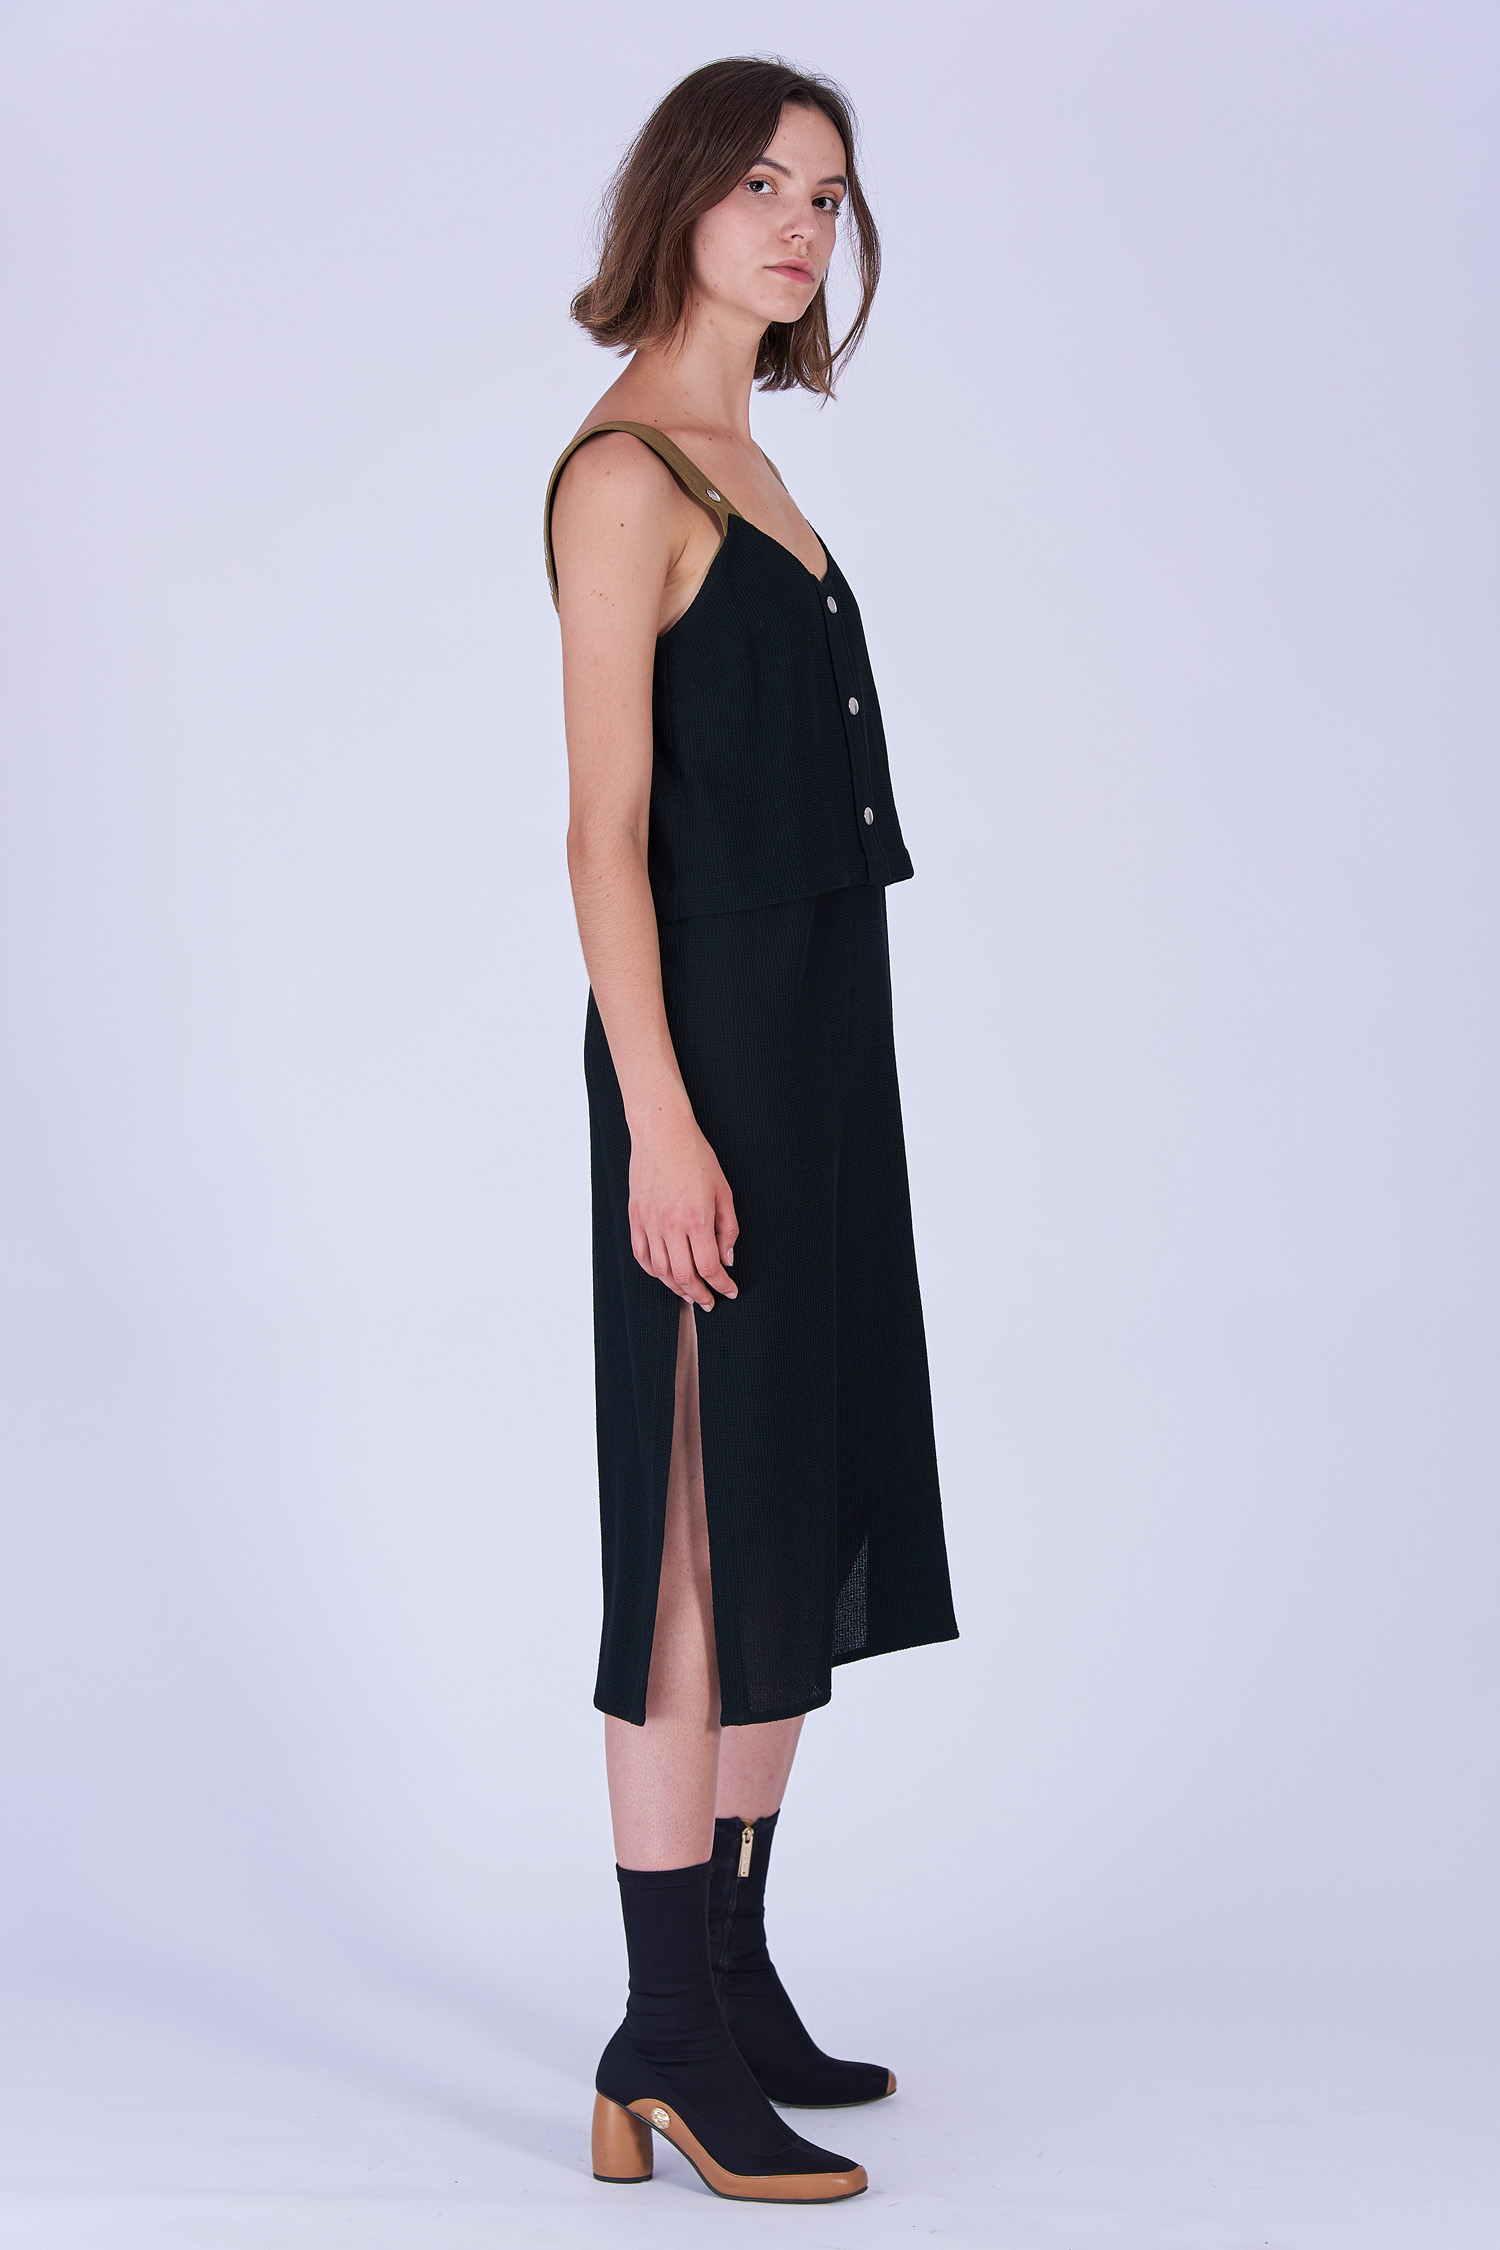 Acephala Fw19 20 Black Strap Midi Dress Czarna Sukienka Szelki Side 2